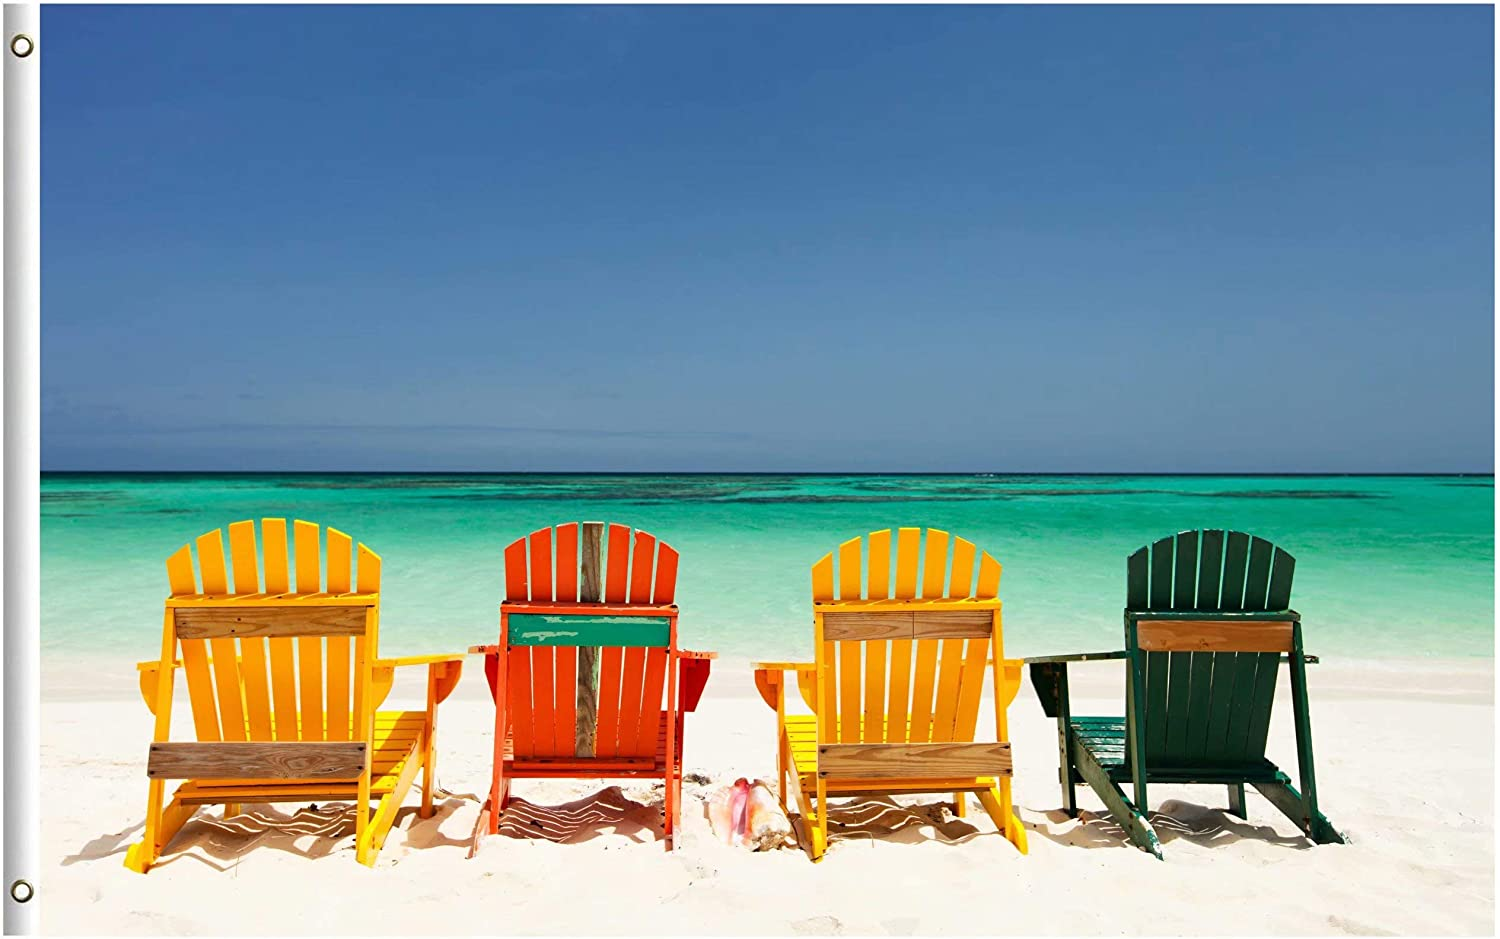 ShineSnow Summer Exotic Tropical Colorful Chairs On Beach Sea Ocean Nature 3x5 Feet Flag, Polyester Double Stitched with Brass Grommets 3 X 5 Ft Flag for Outdoor Indoor Home Decor